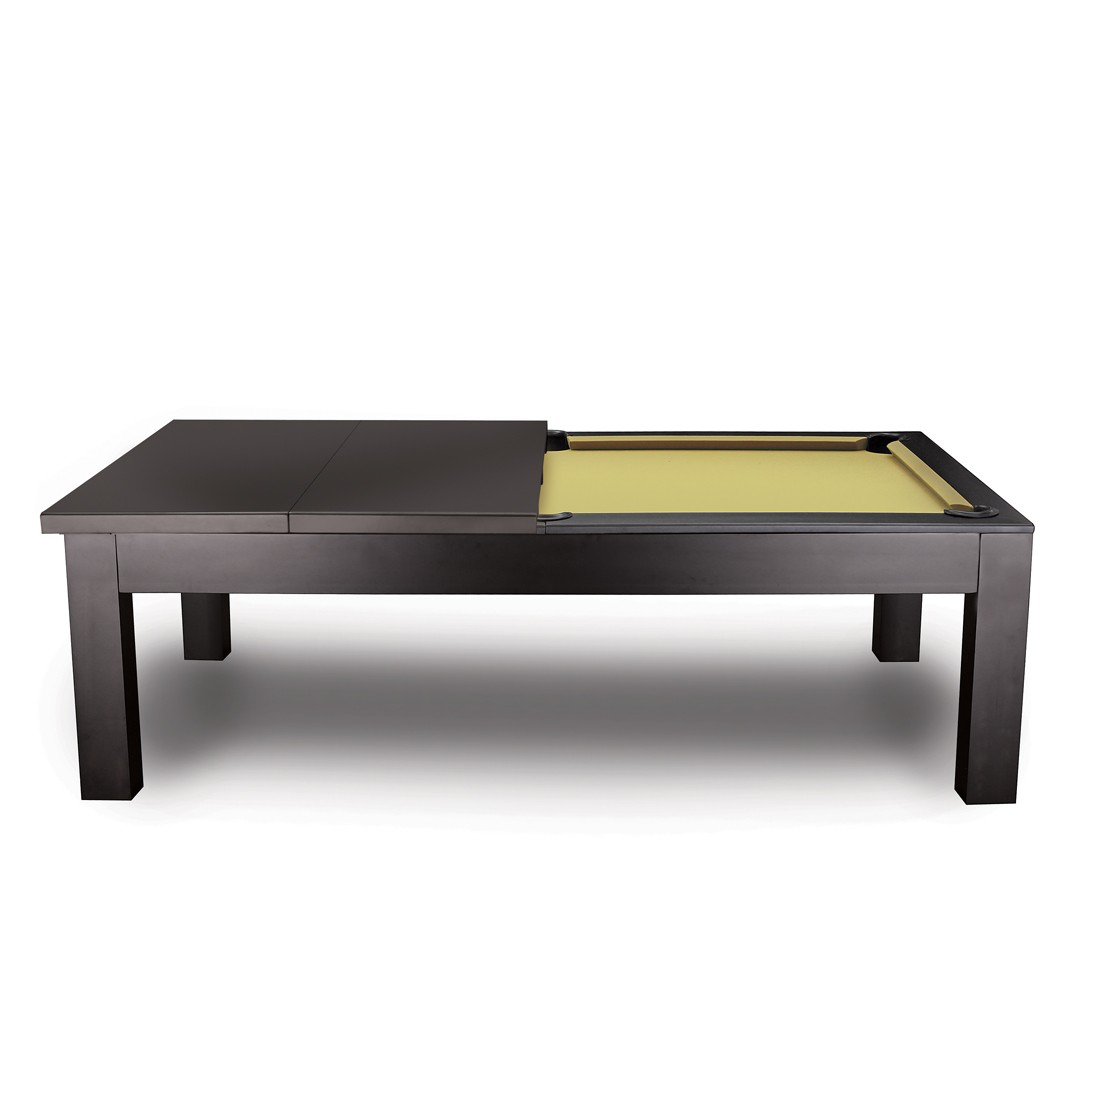 Imperial The Penelope 8Ft with Dining Top - Espresso